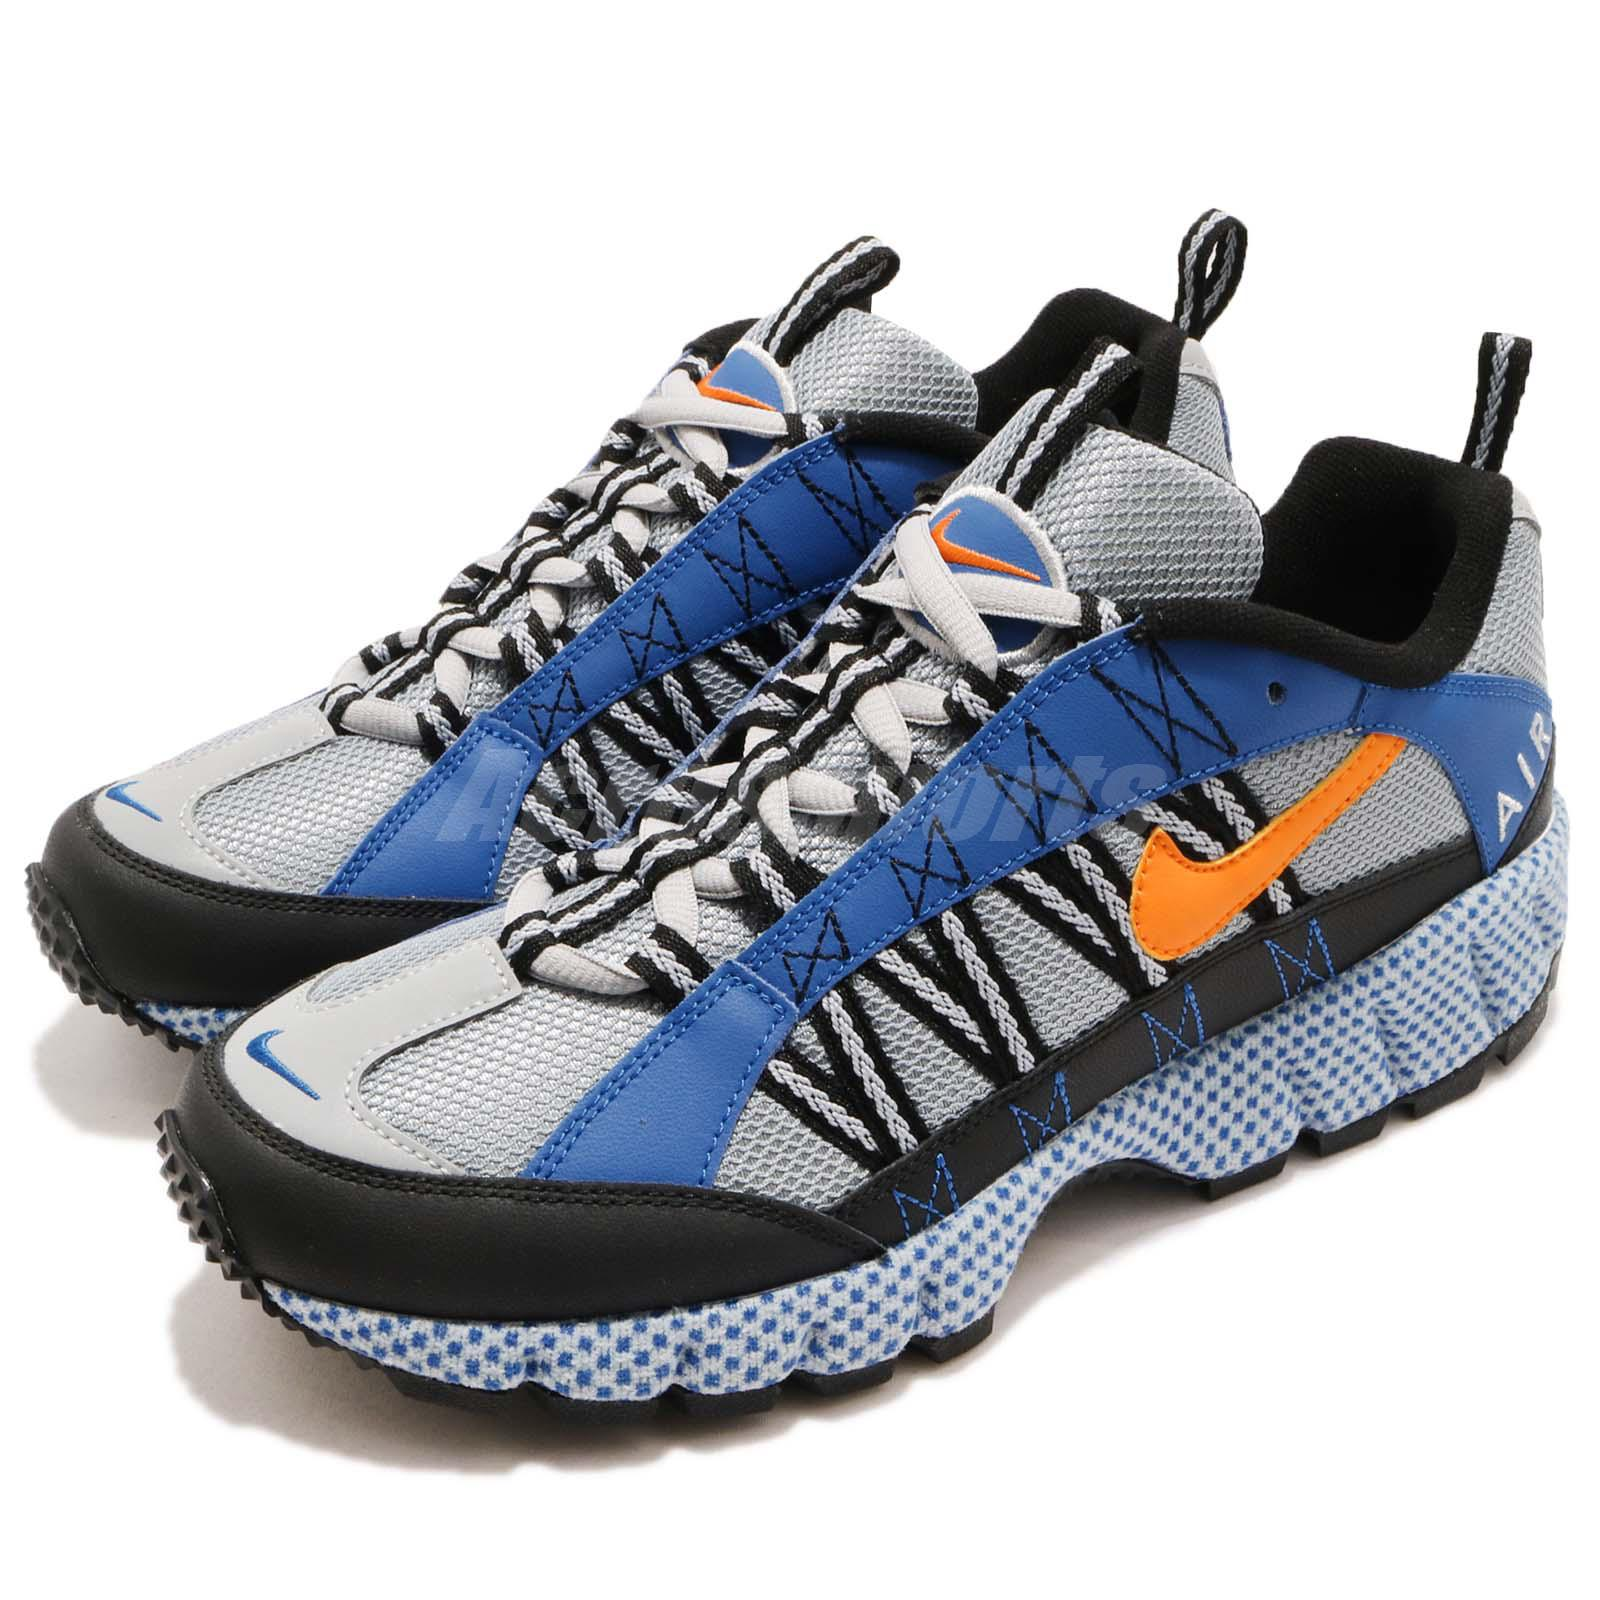 new styles 02460 f2125 Details about Nike Air Humara 17 QS Blue Spark Silver Men Outdoors Shoes  Sneakers AO3297-001